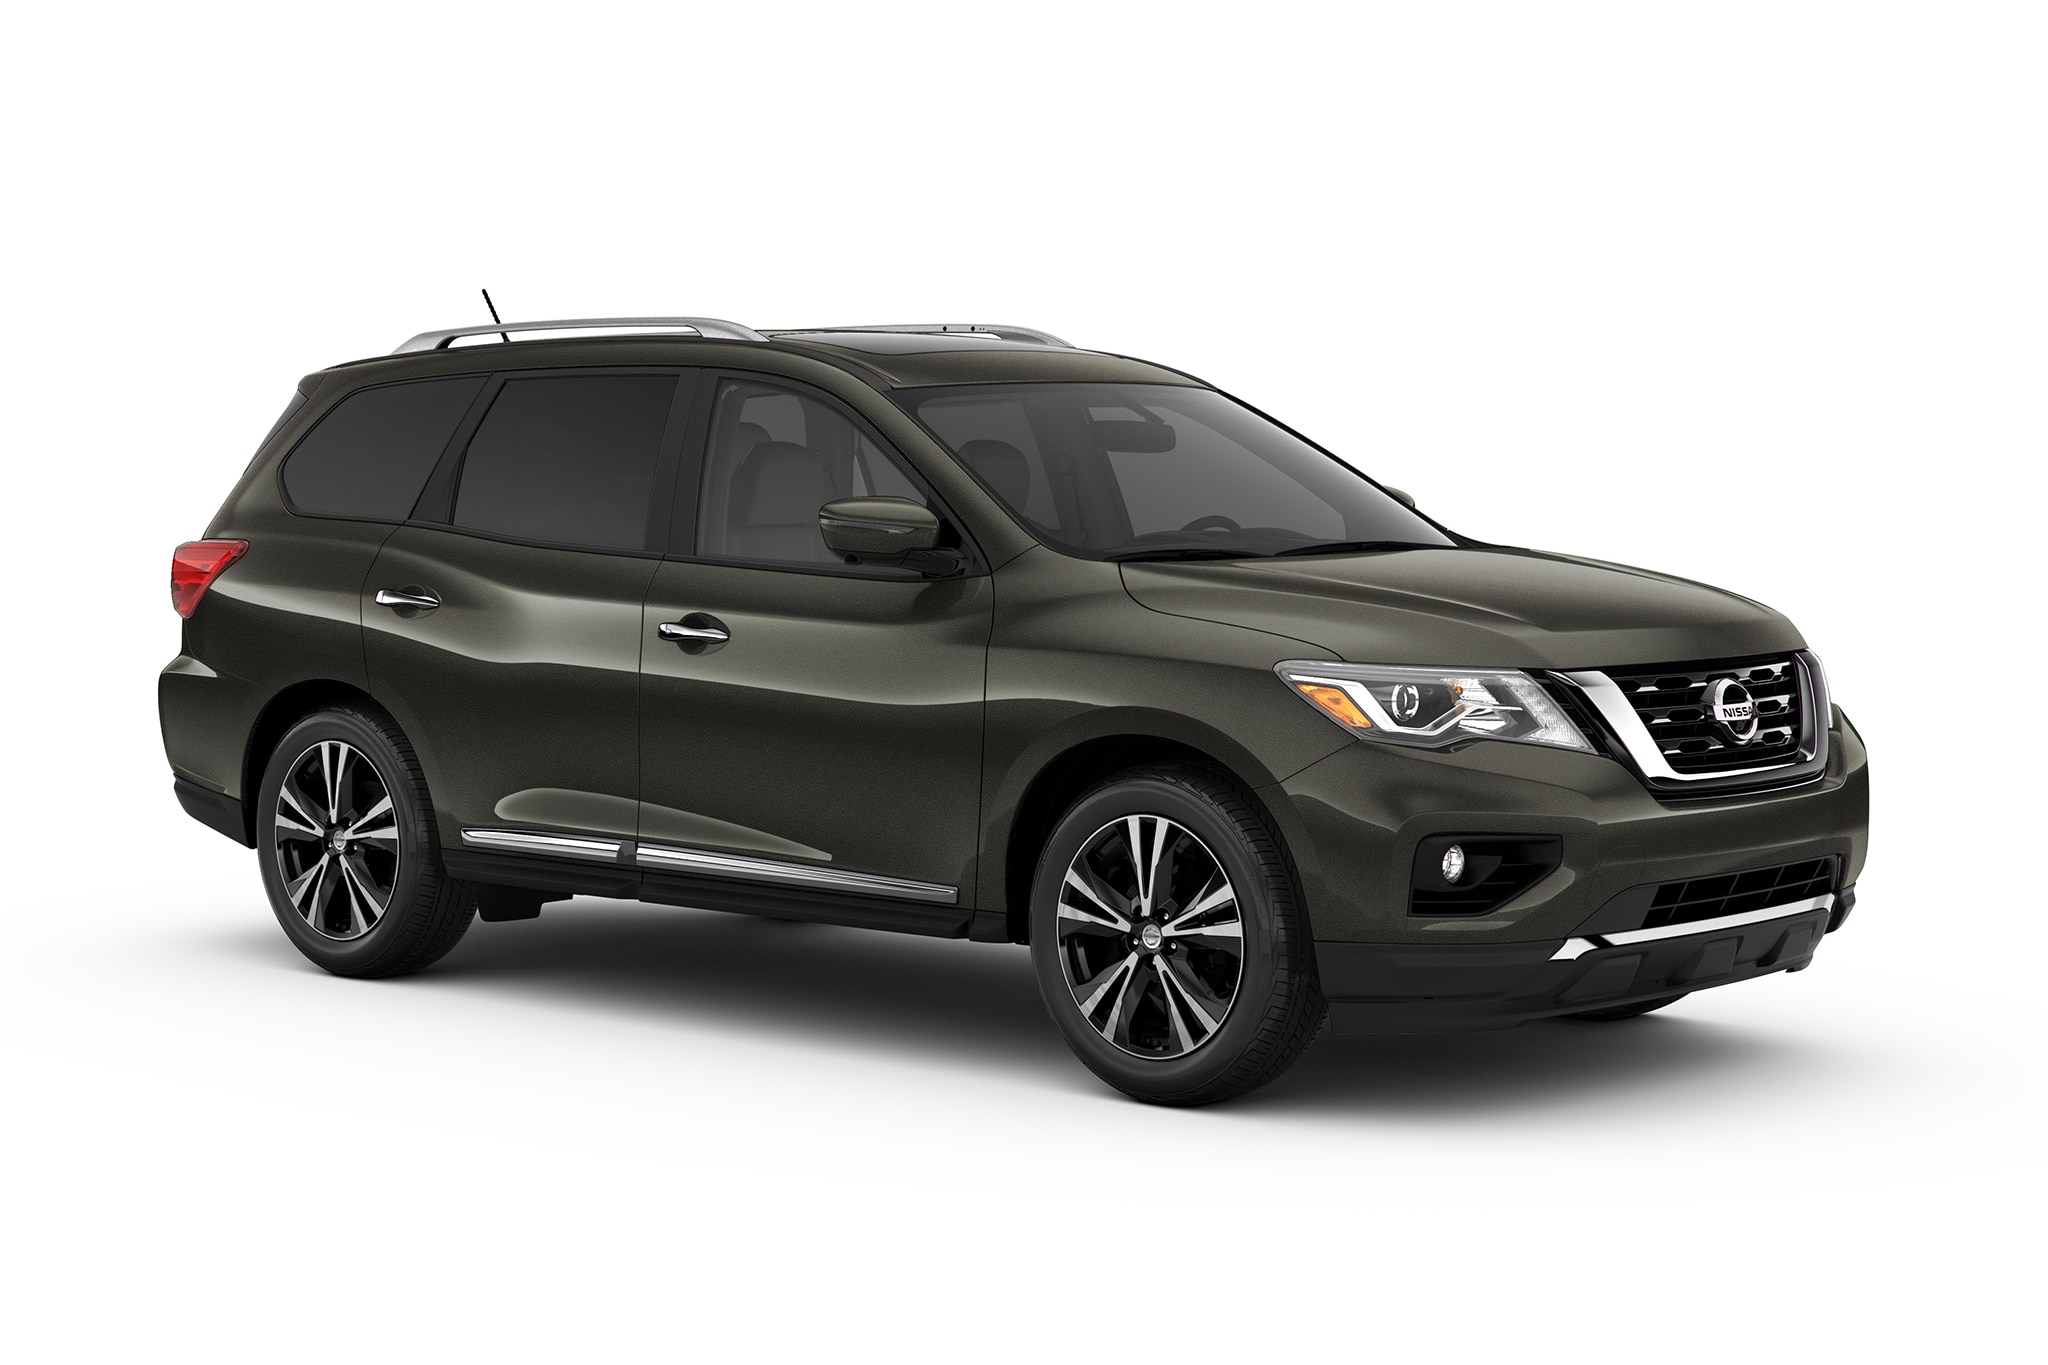 2017 nissan pathfinder revealed with more power torque tech automobile magazine. Black Bedroom Furniture Sets. Home Design Ideas